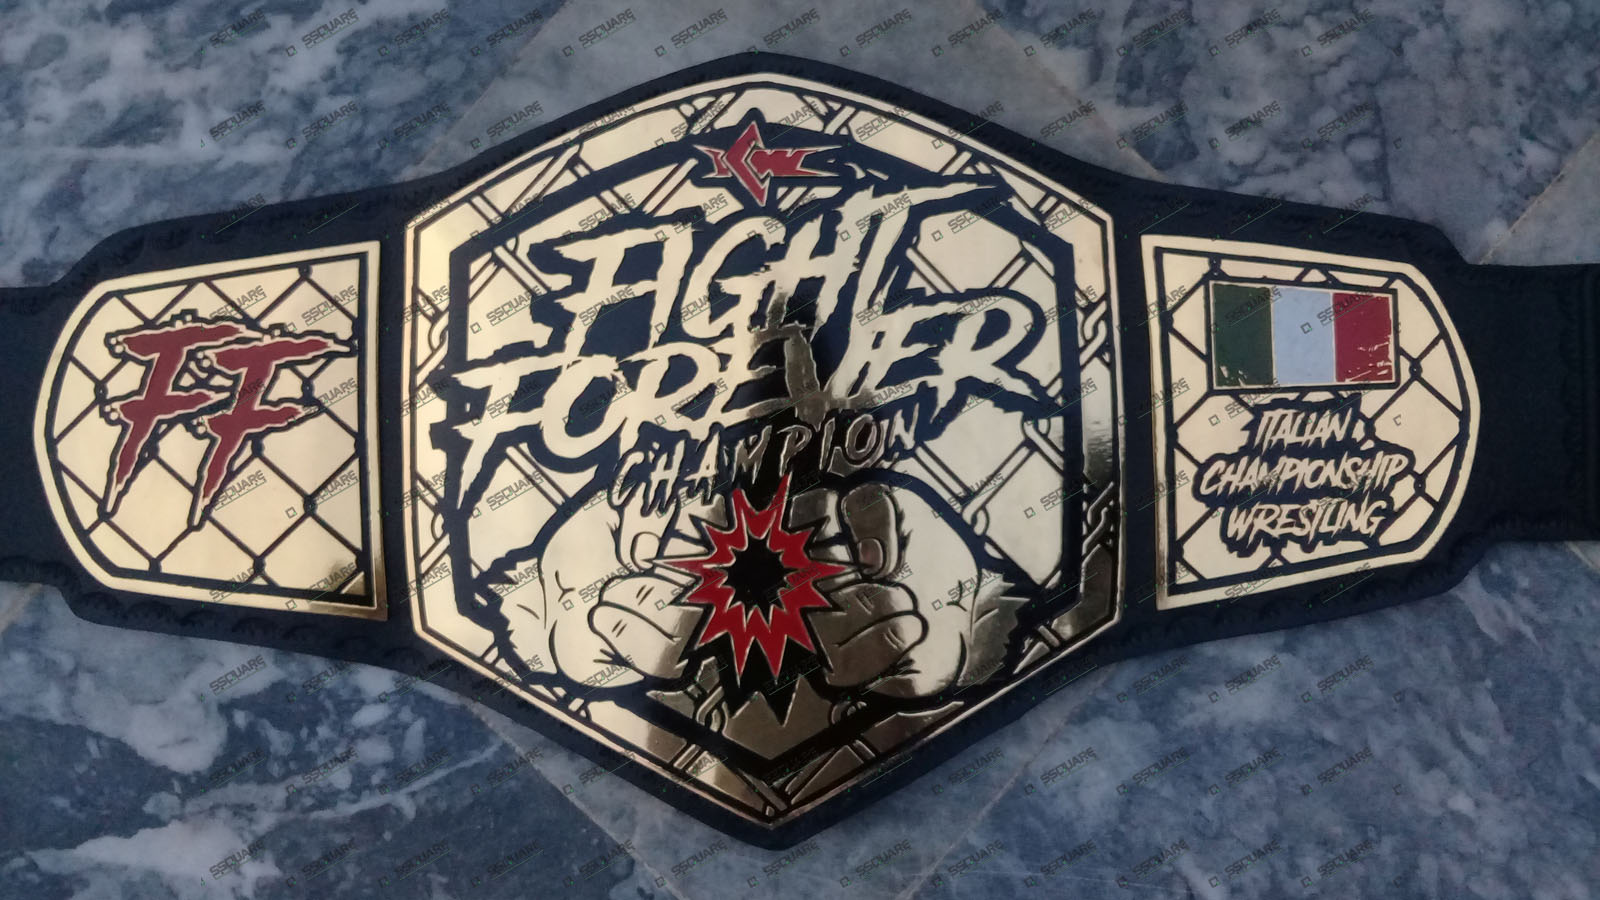 ICW Custom Fight Forever Champion belt